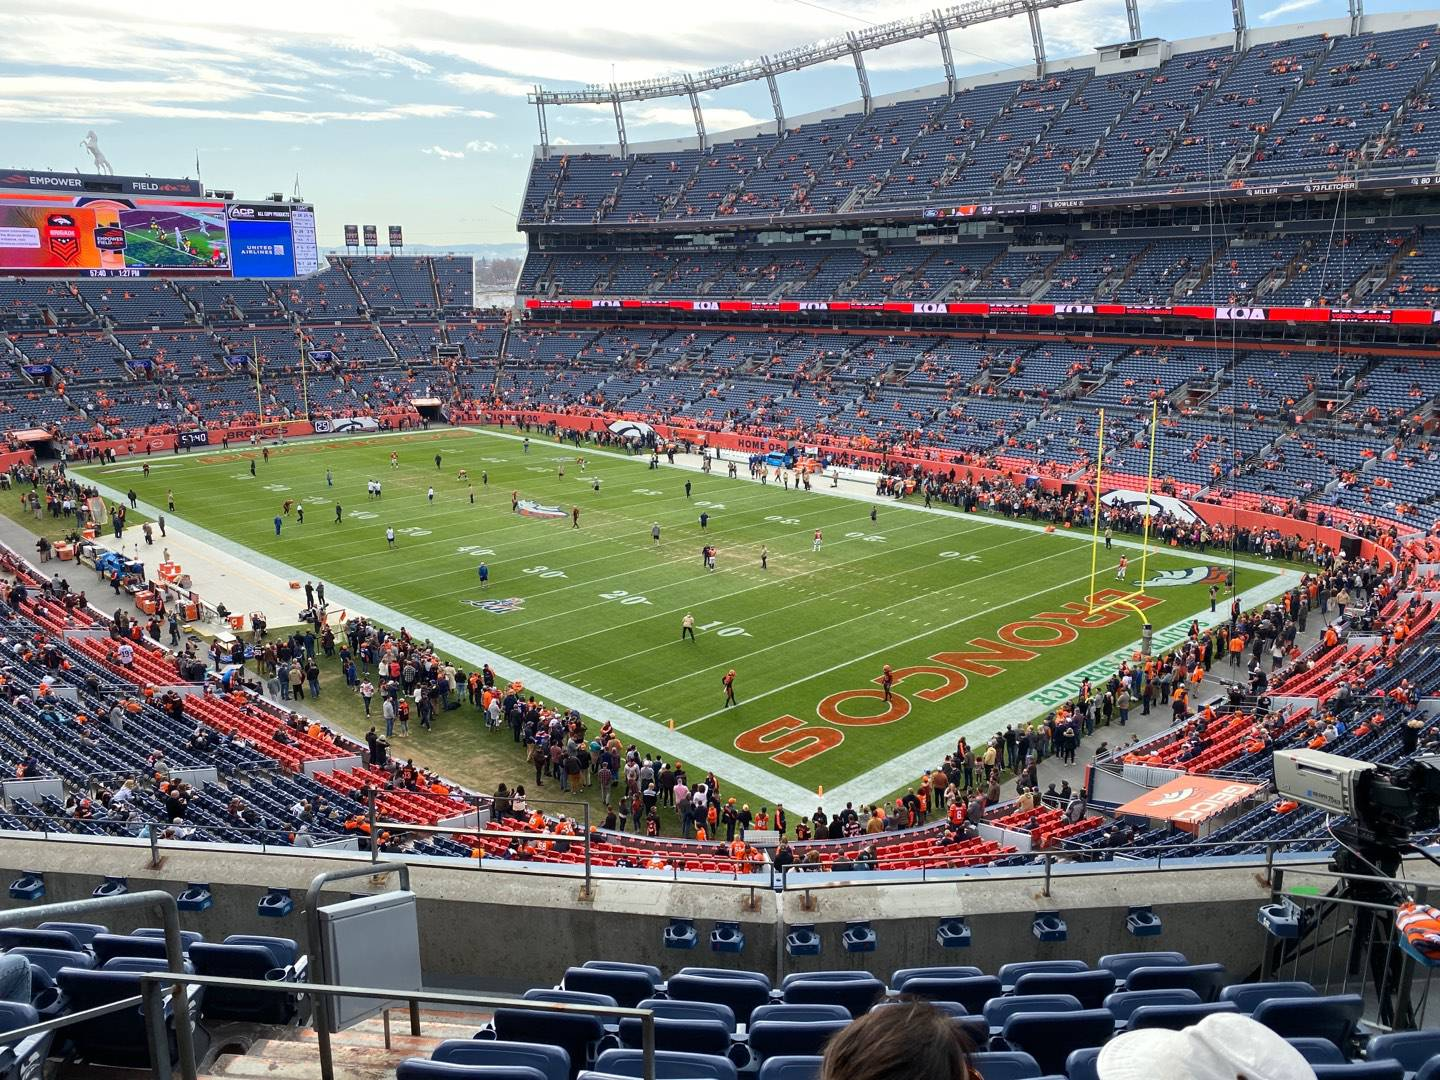 Empower Field at Mile High Stadium Section 328 Row 7 Seat 13